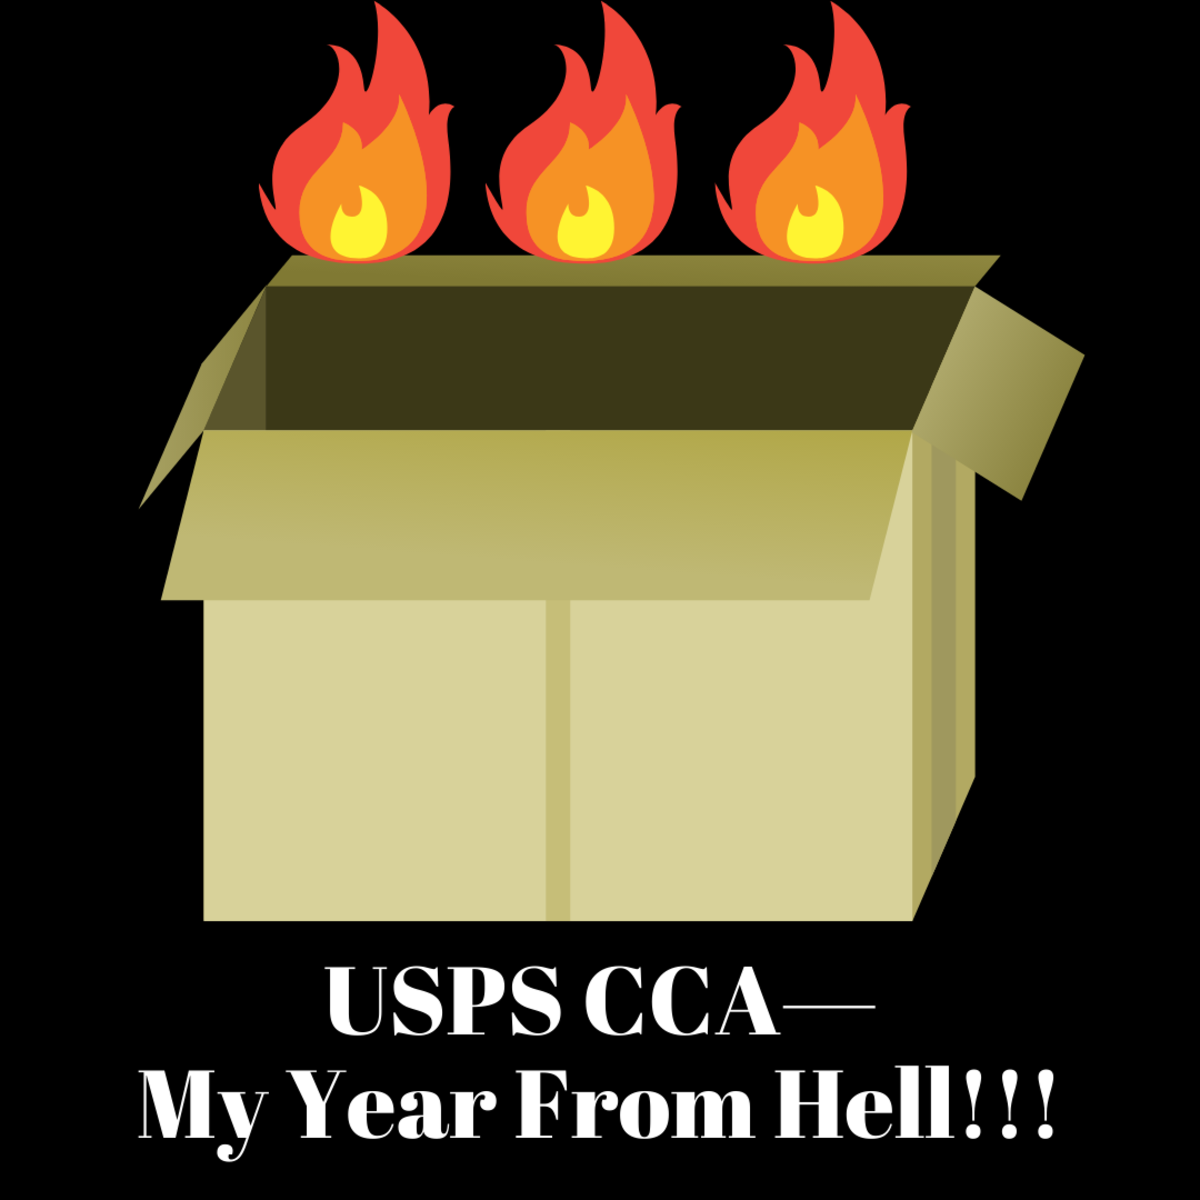 Read on to learn about my horrible experiences working at USPS.